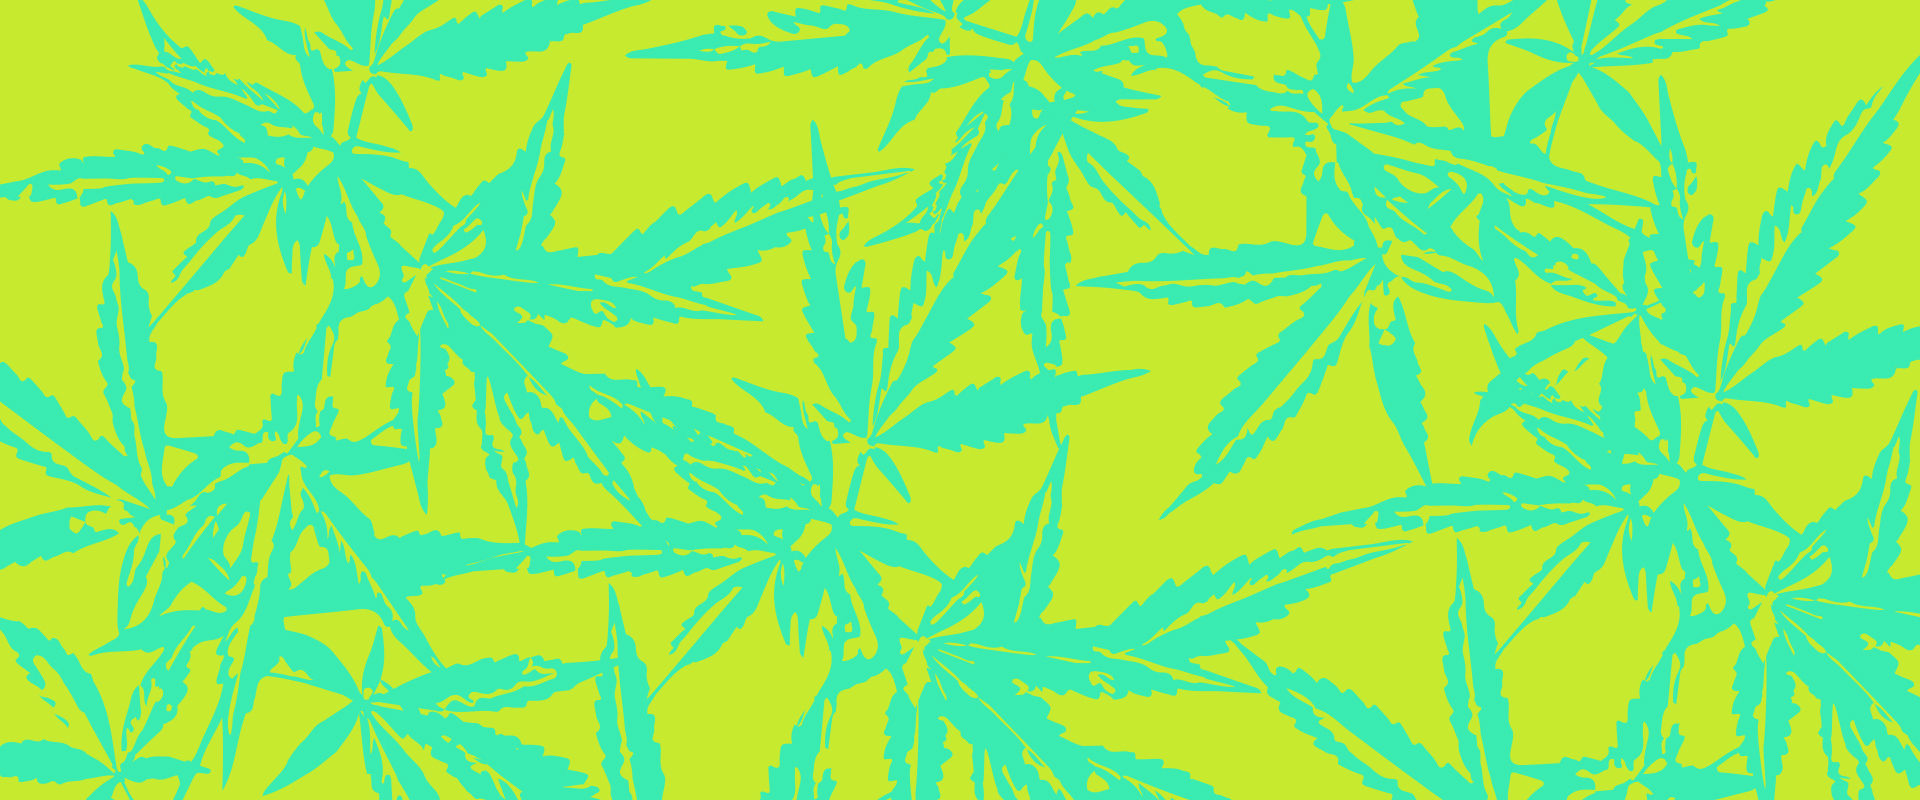 Ten17 Digital Cannabis Co Branded Bright Green Pattern of Cannabis Leaves